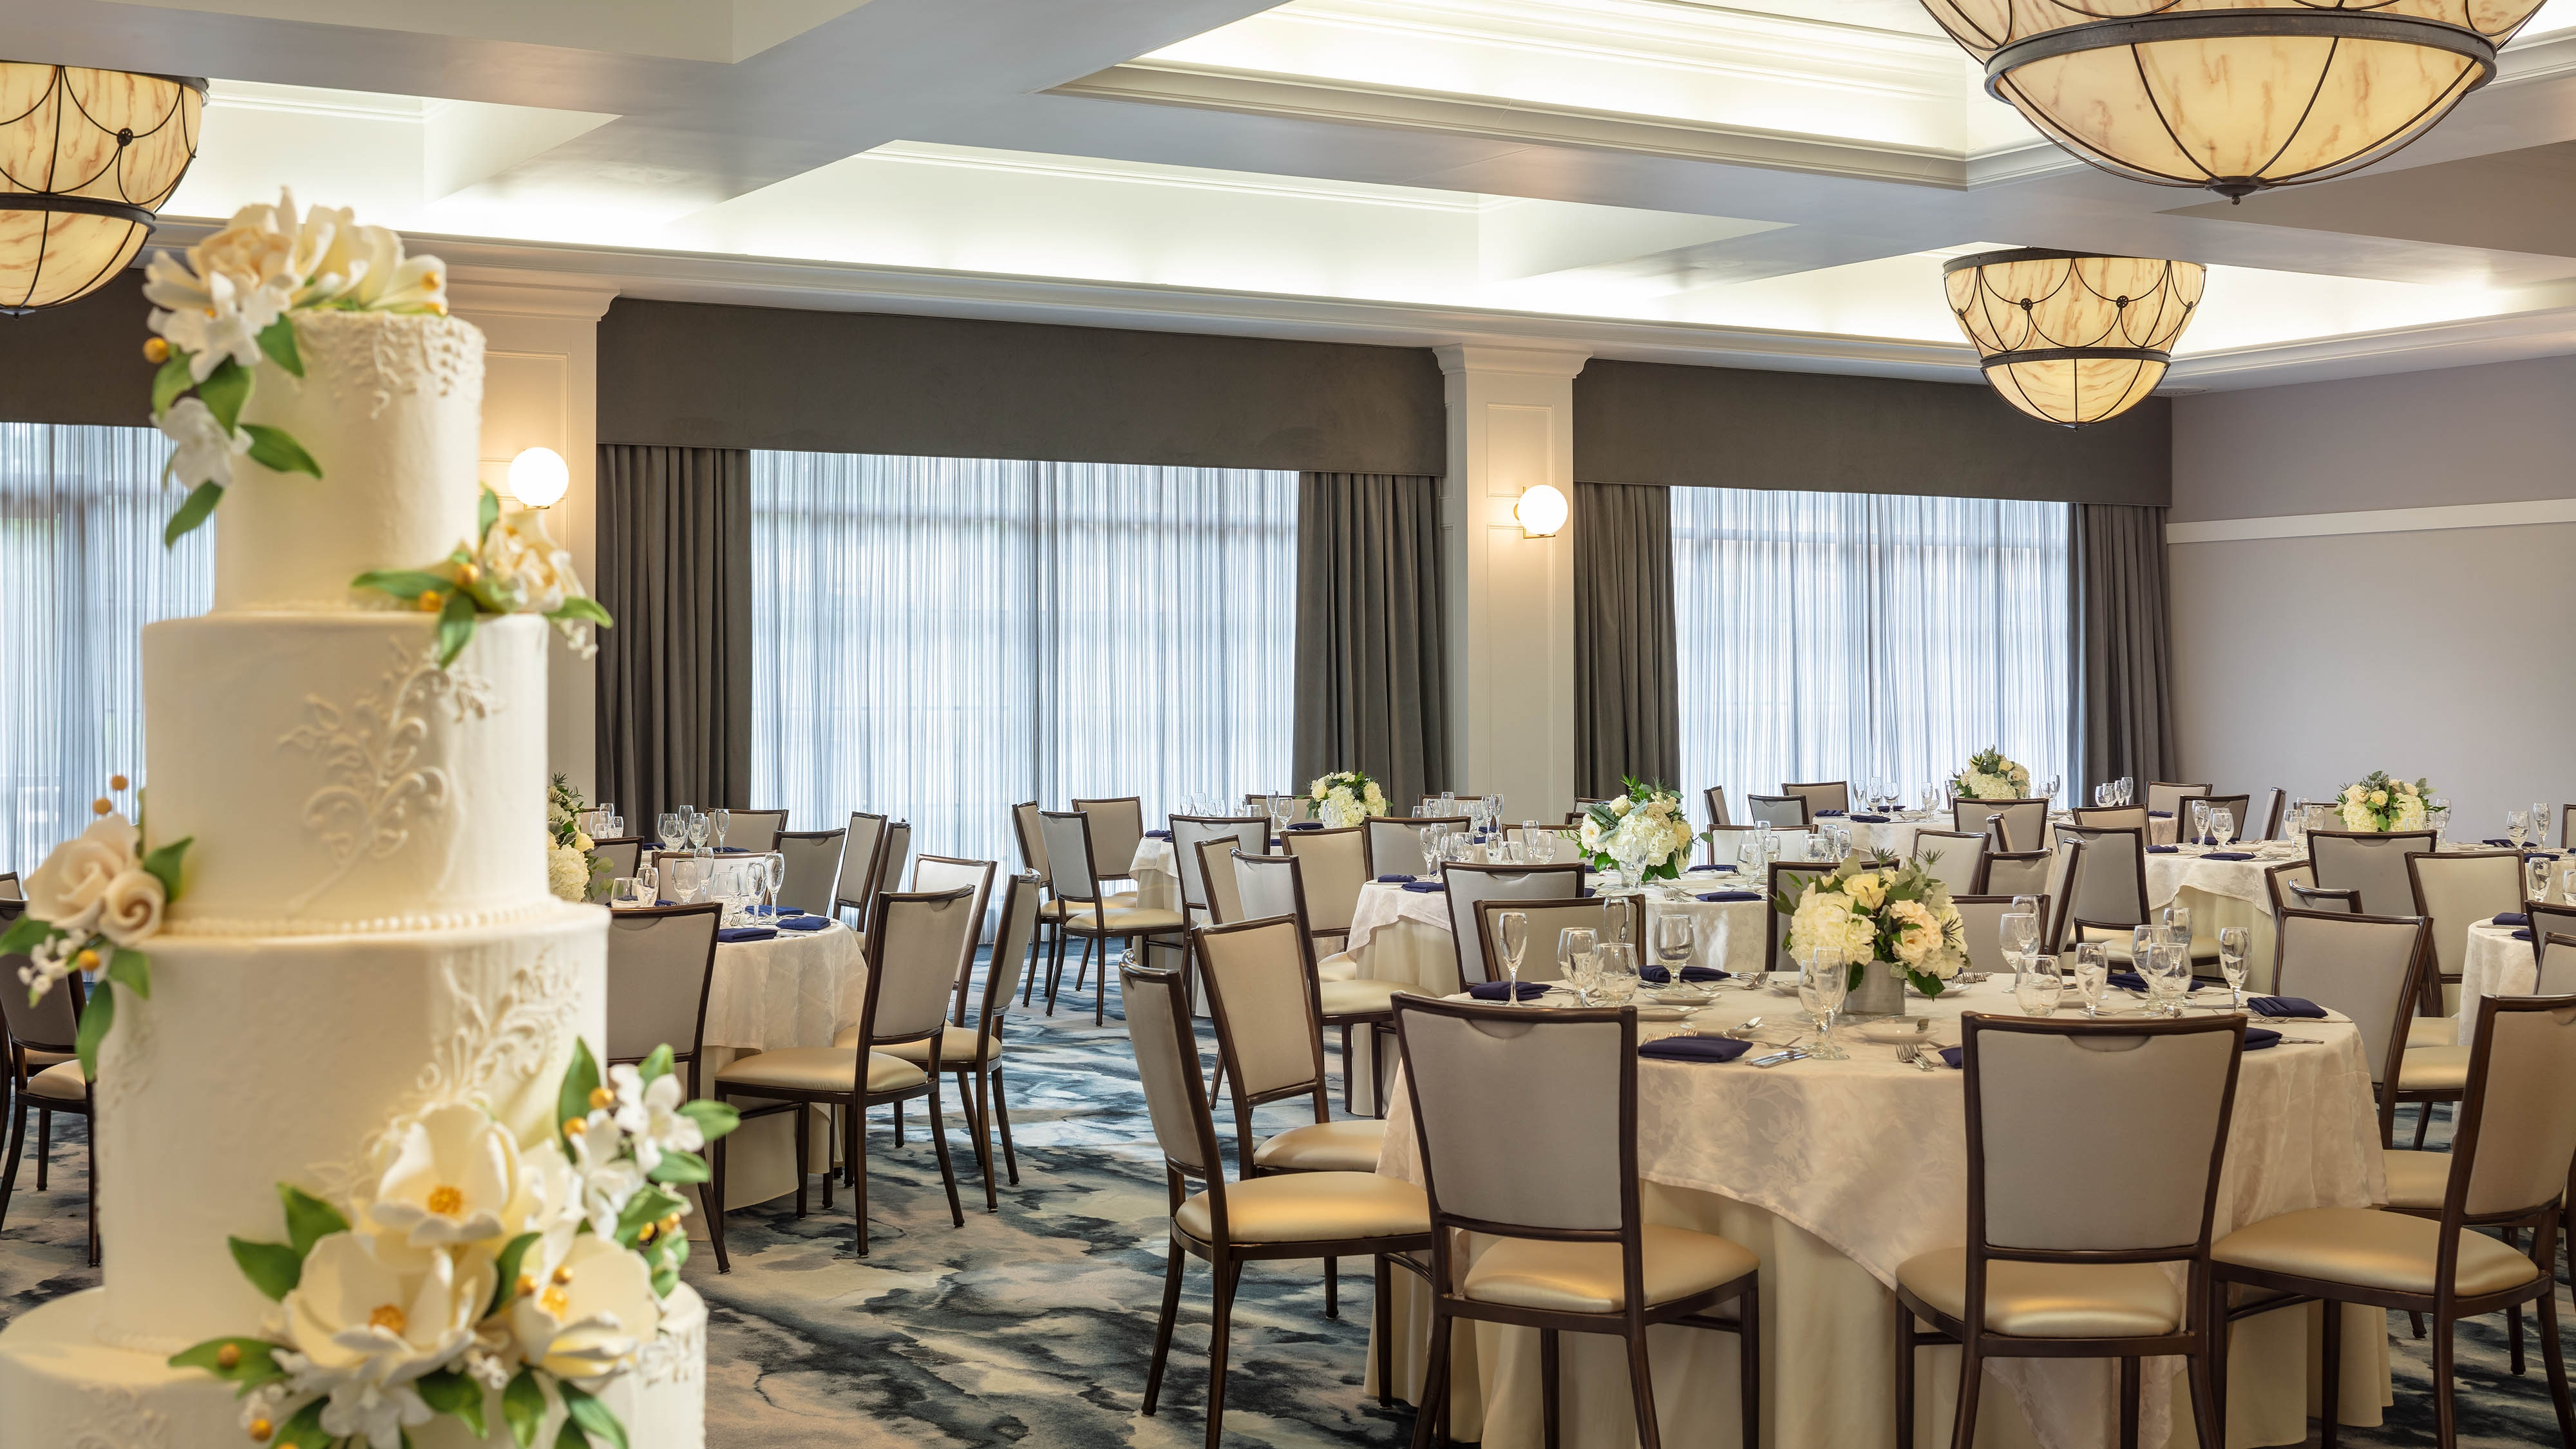 Our in-house event coordinators will ensure a flawless wedding that utilizes all of our offerings, from custom catering to audiovisual services.